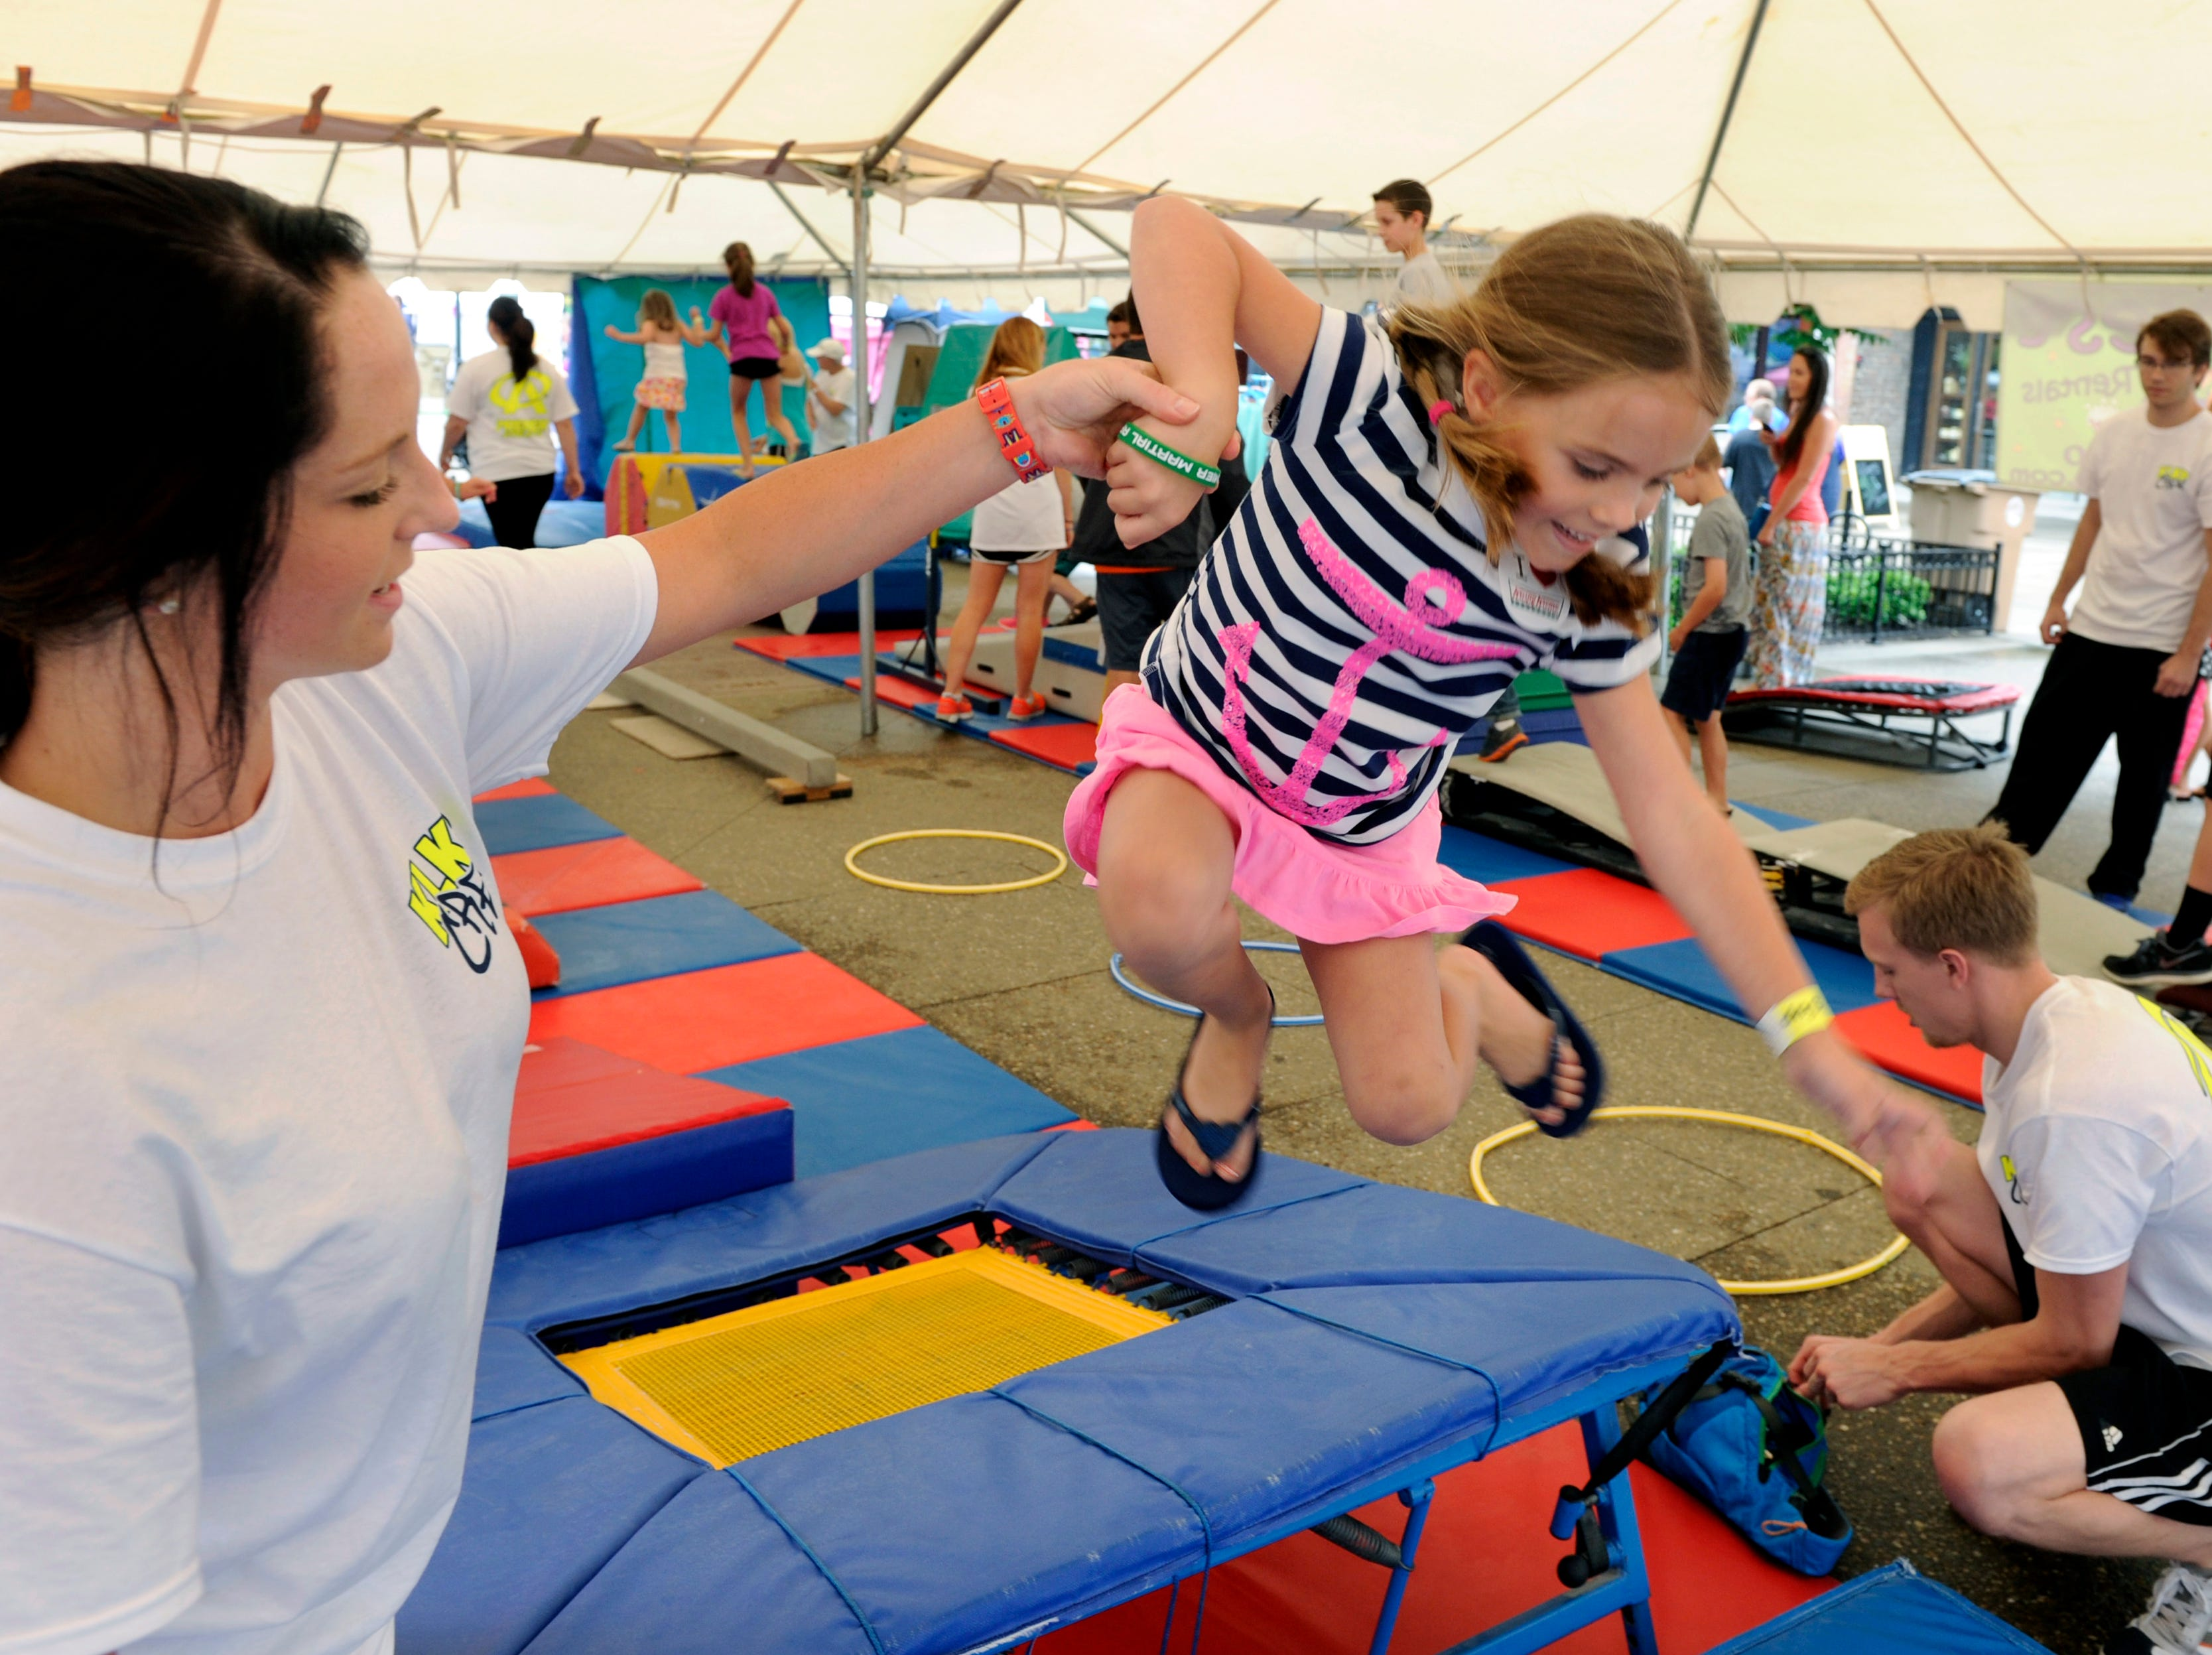 Alli McKamey, 6, gets a hand from Premier Athletics employee Charlotte Loy while playing at Knoxville's Largest Kids Party on Market Mall Friday, Jun. 13, 2014.    (MICHAEL PATRICK/NEWS SENTINEL)